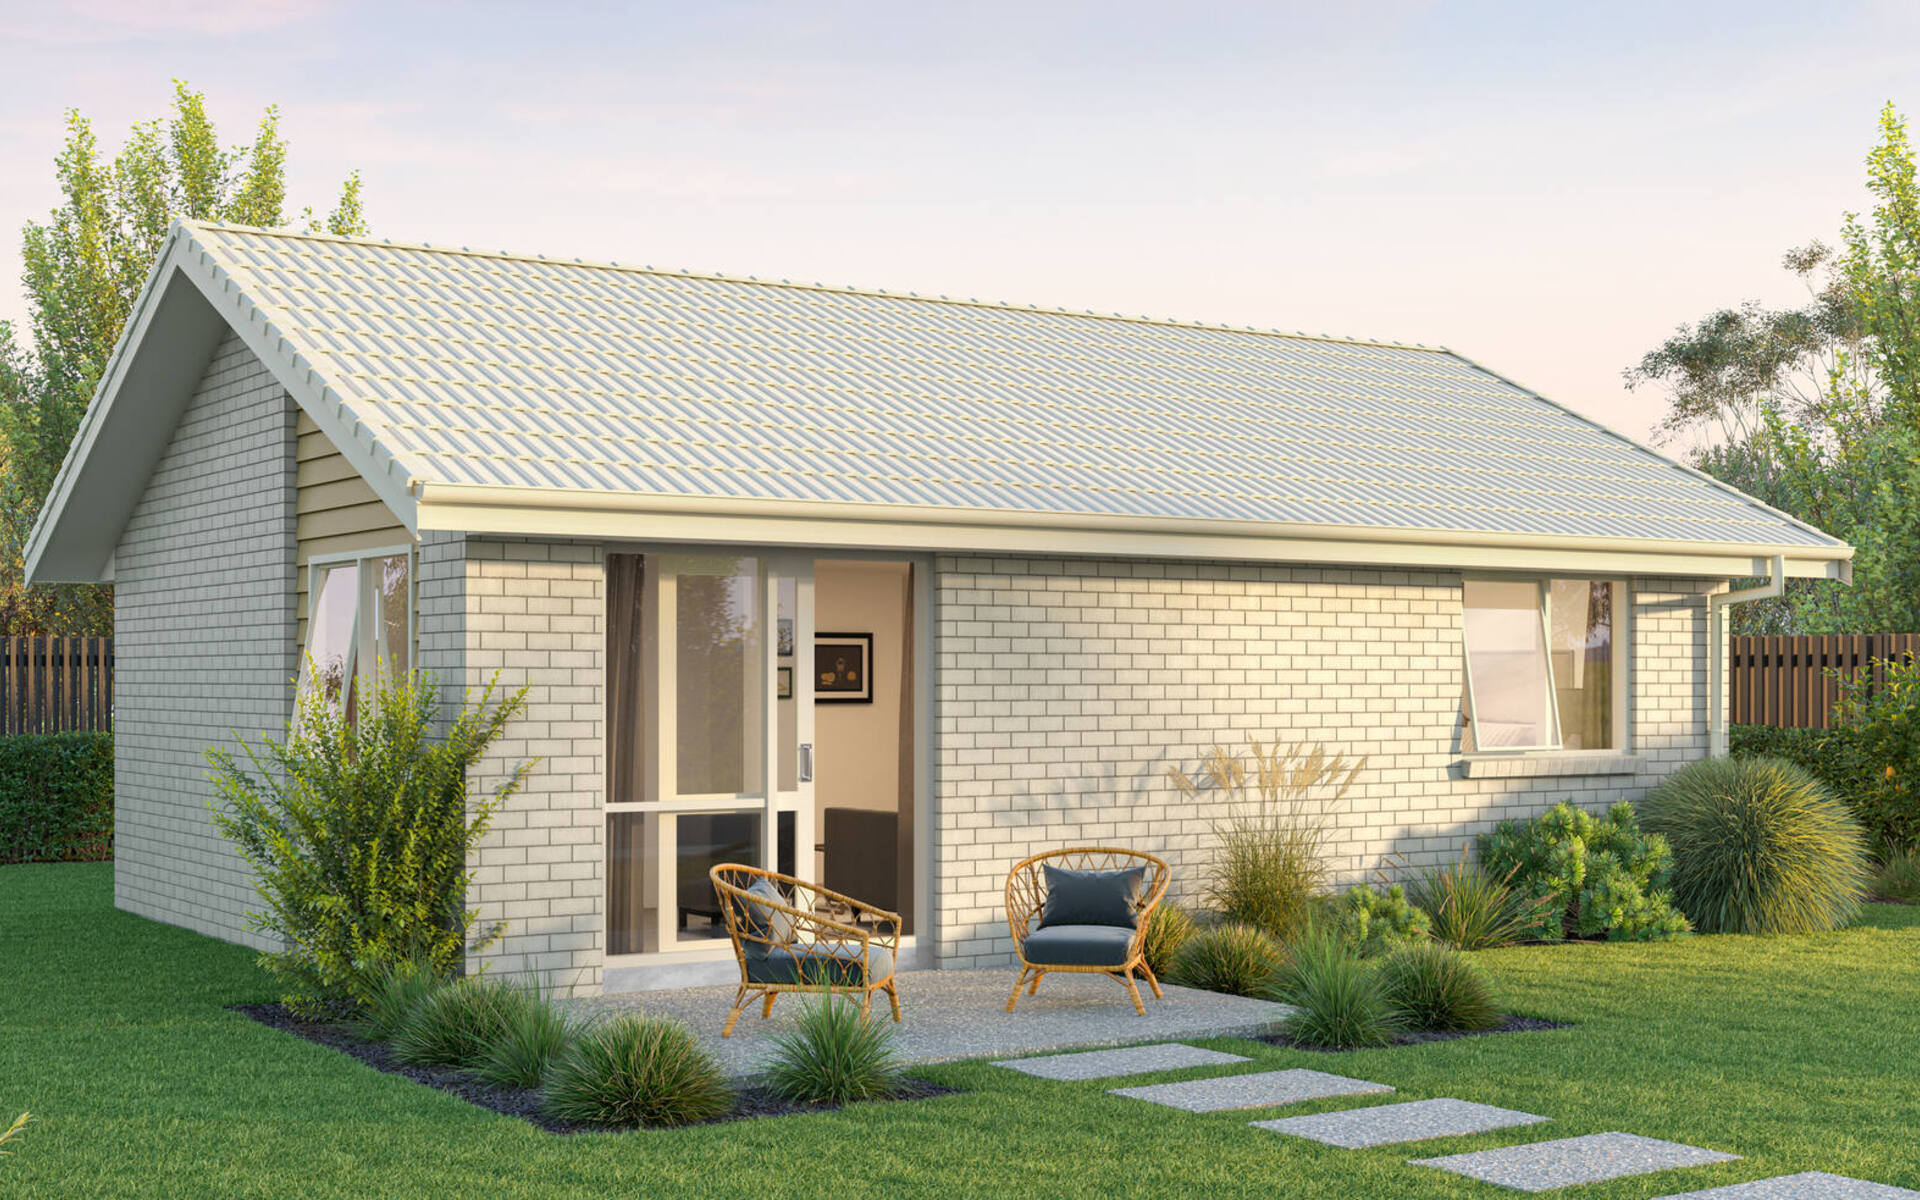 Increase the value of your property with a minor dwelling